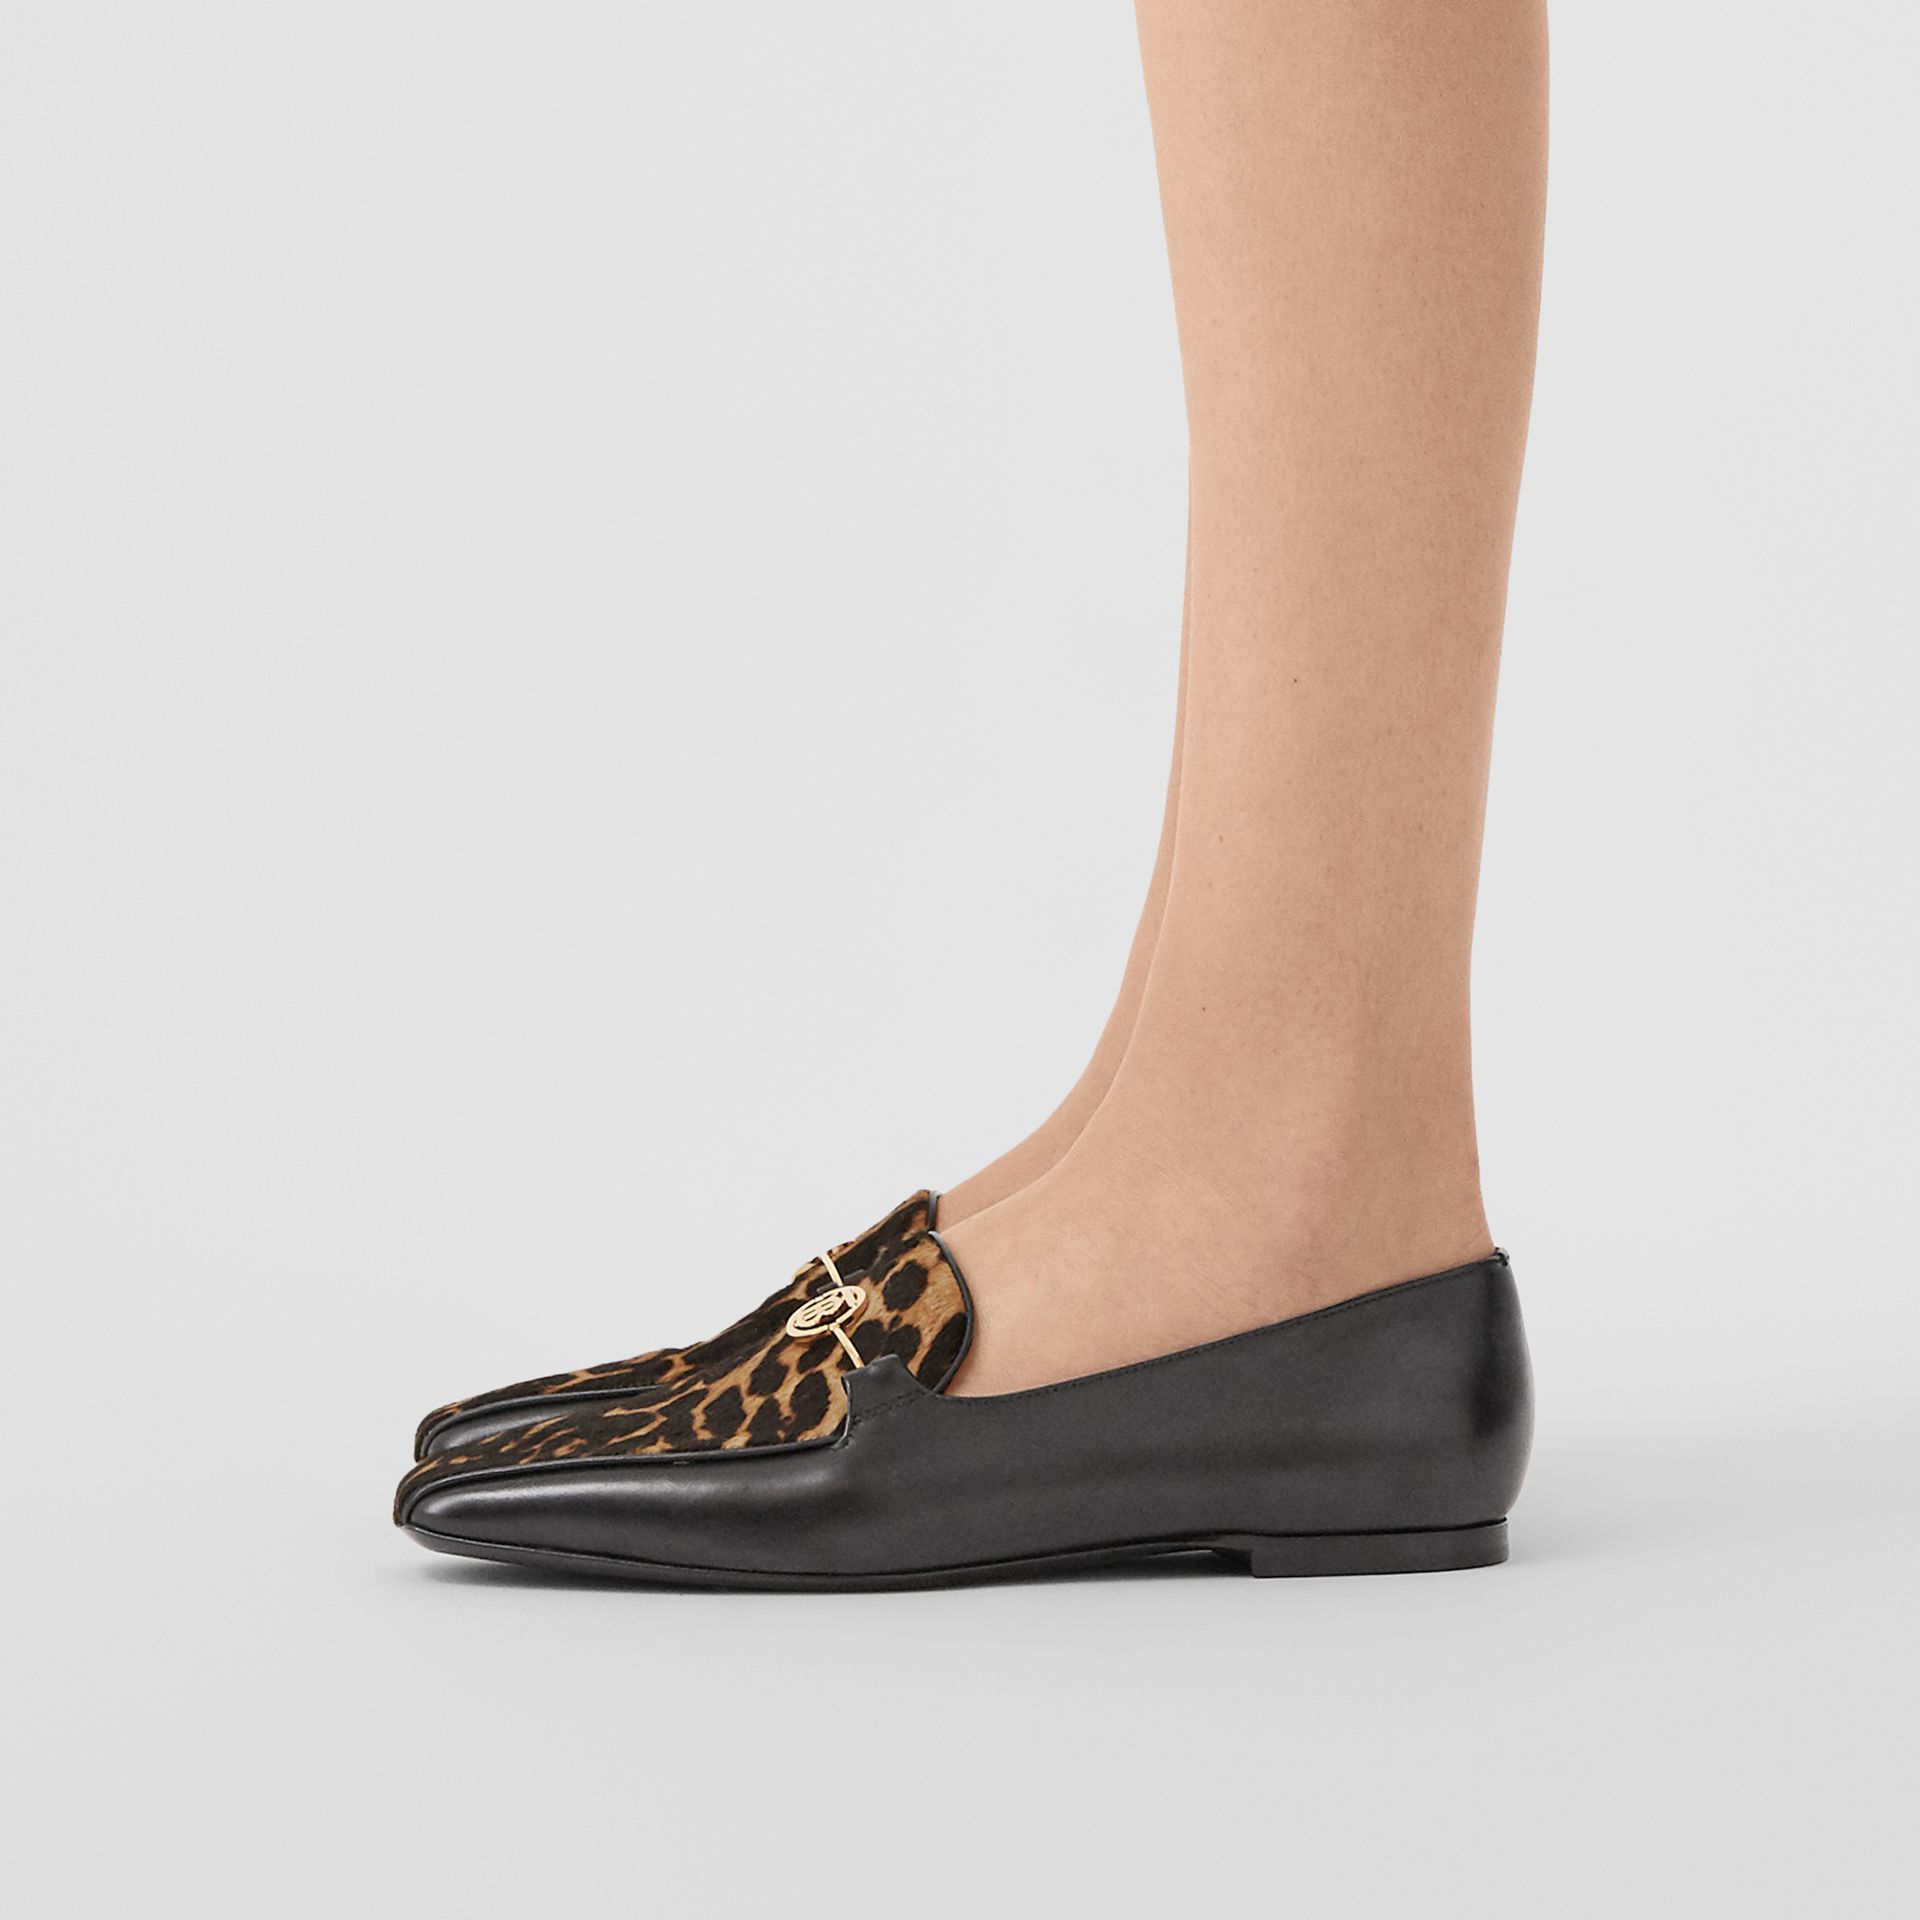 Leopard Print Calf Hair and Leather Loafers in Black/leopard - Women | Burberry United Kingdom - gallery image 2